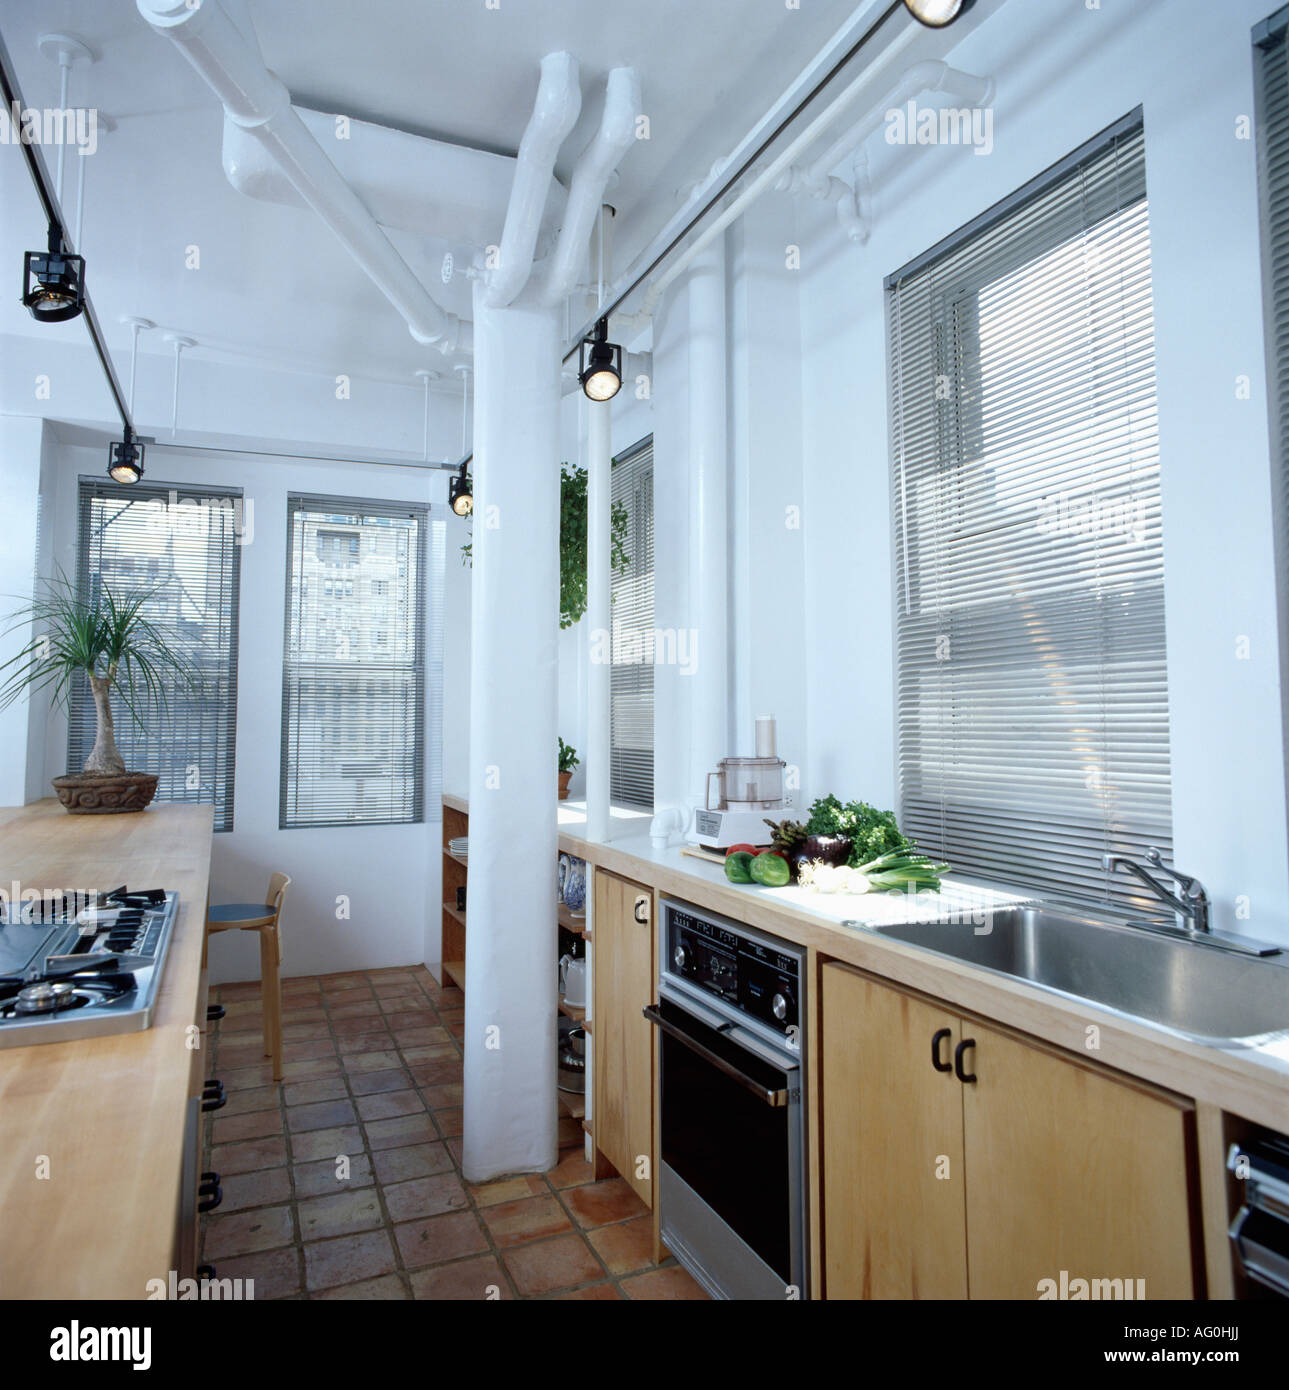 Terracotta floor tiles and white support pillar in modern white terracotta floor tiles and white support pillar in modern white city kitchen dailygadgetfo Gallery